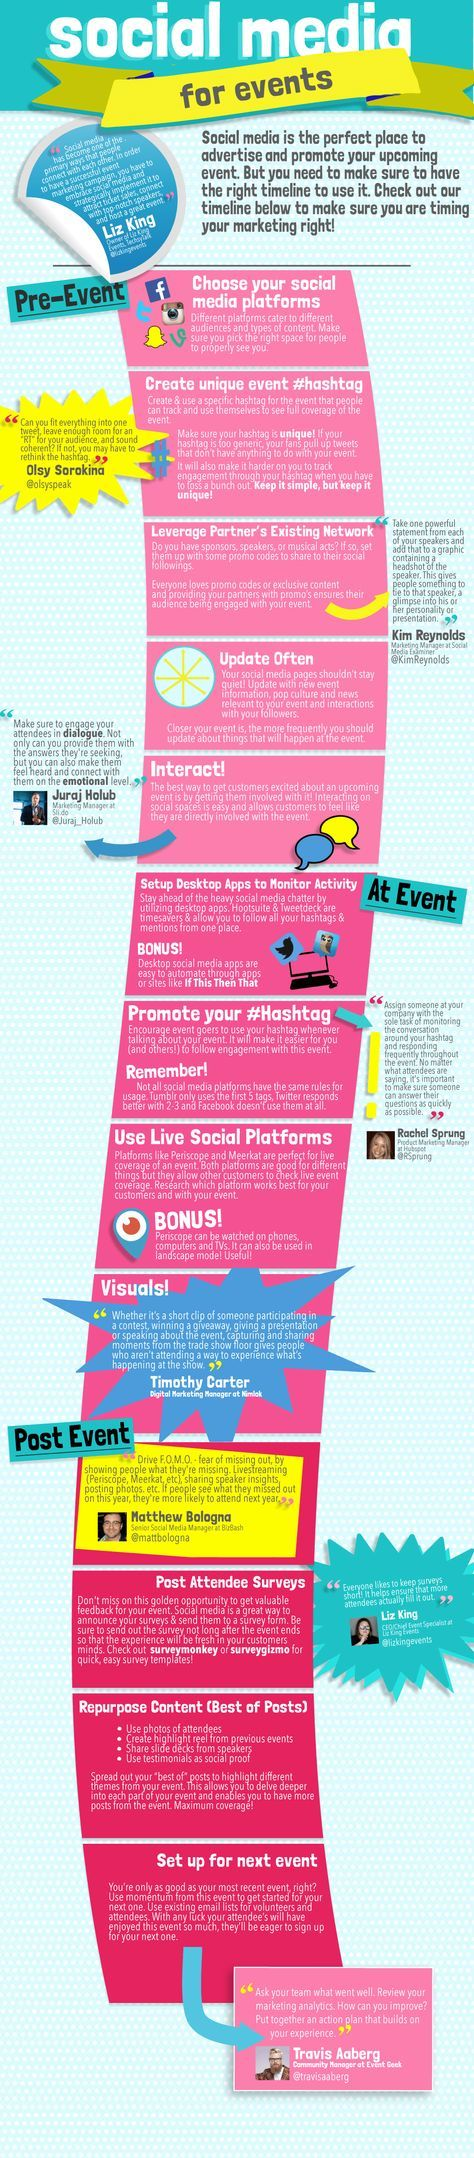 Event marketing can be rough and it all comes down to timing. Social media makes it easier though! Check out our timeline with tips from leading event marketers on the do's and don'ts of when and how to market your event on social media.  Learn more at https://ticketbud.com/p/online-ticket-sales-system-for-events